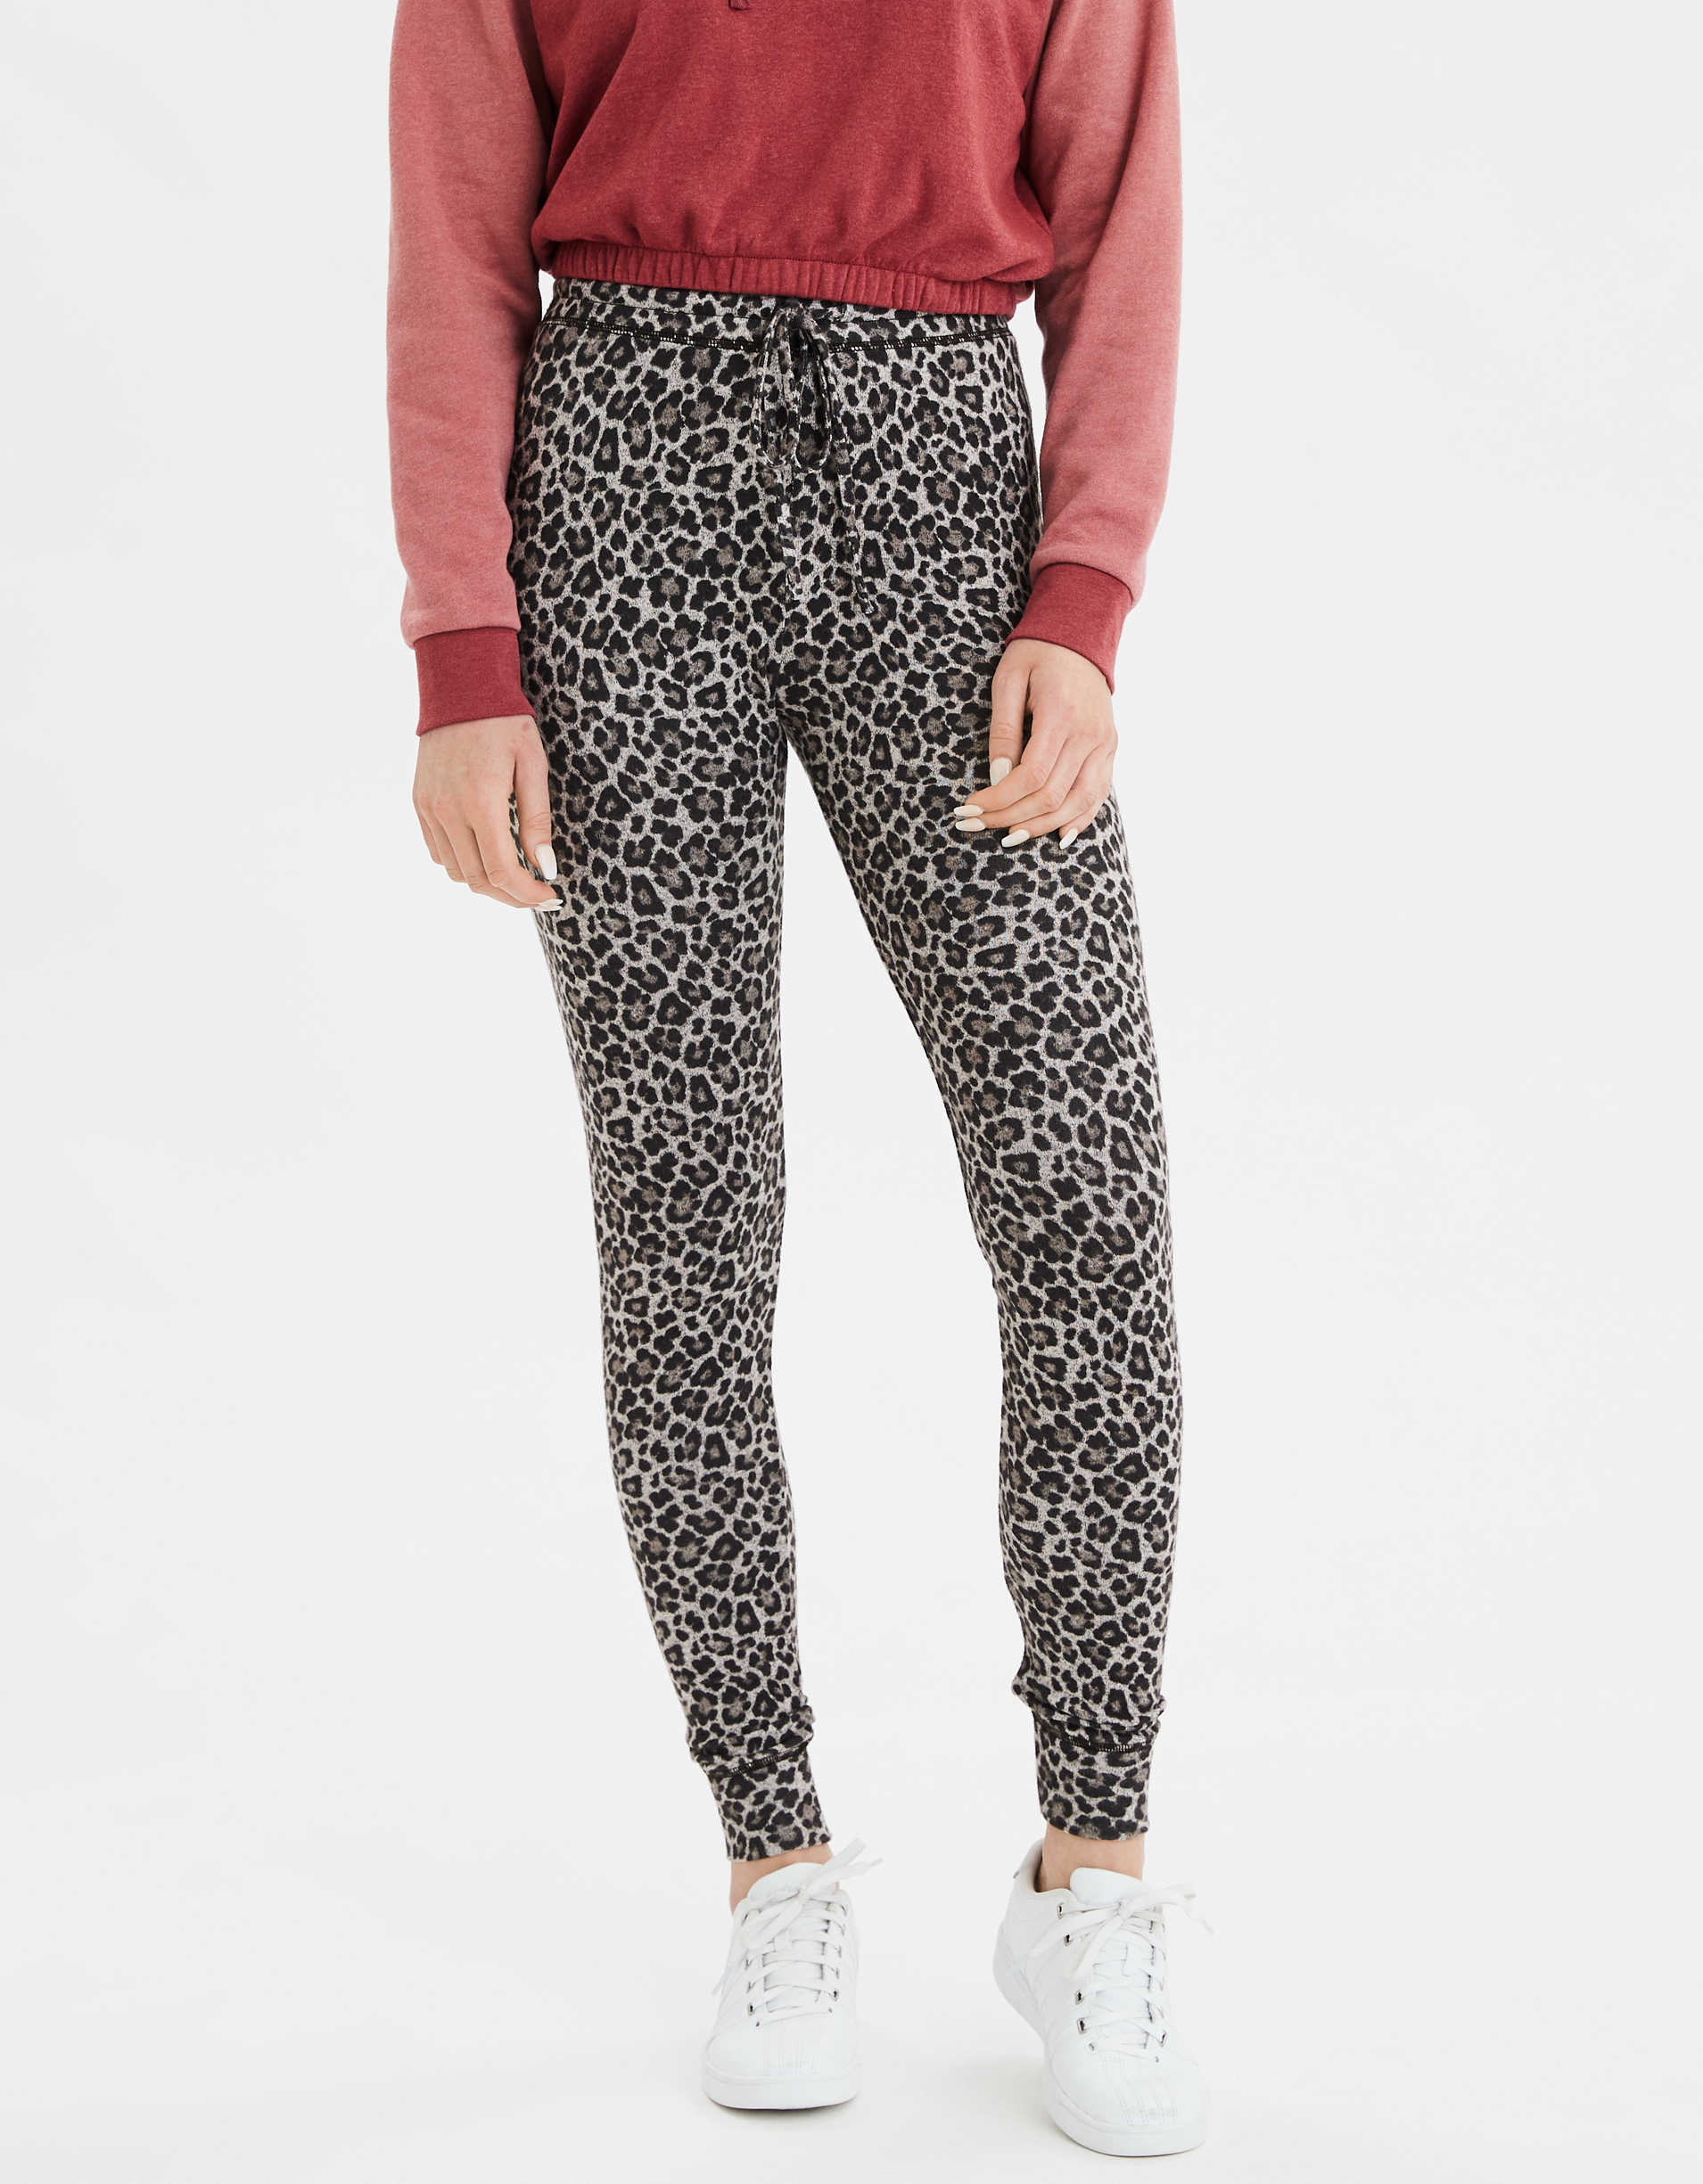 AE High-Rise Plush Leopard Legging